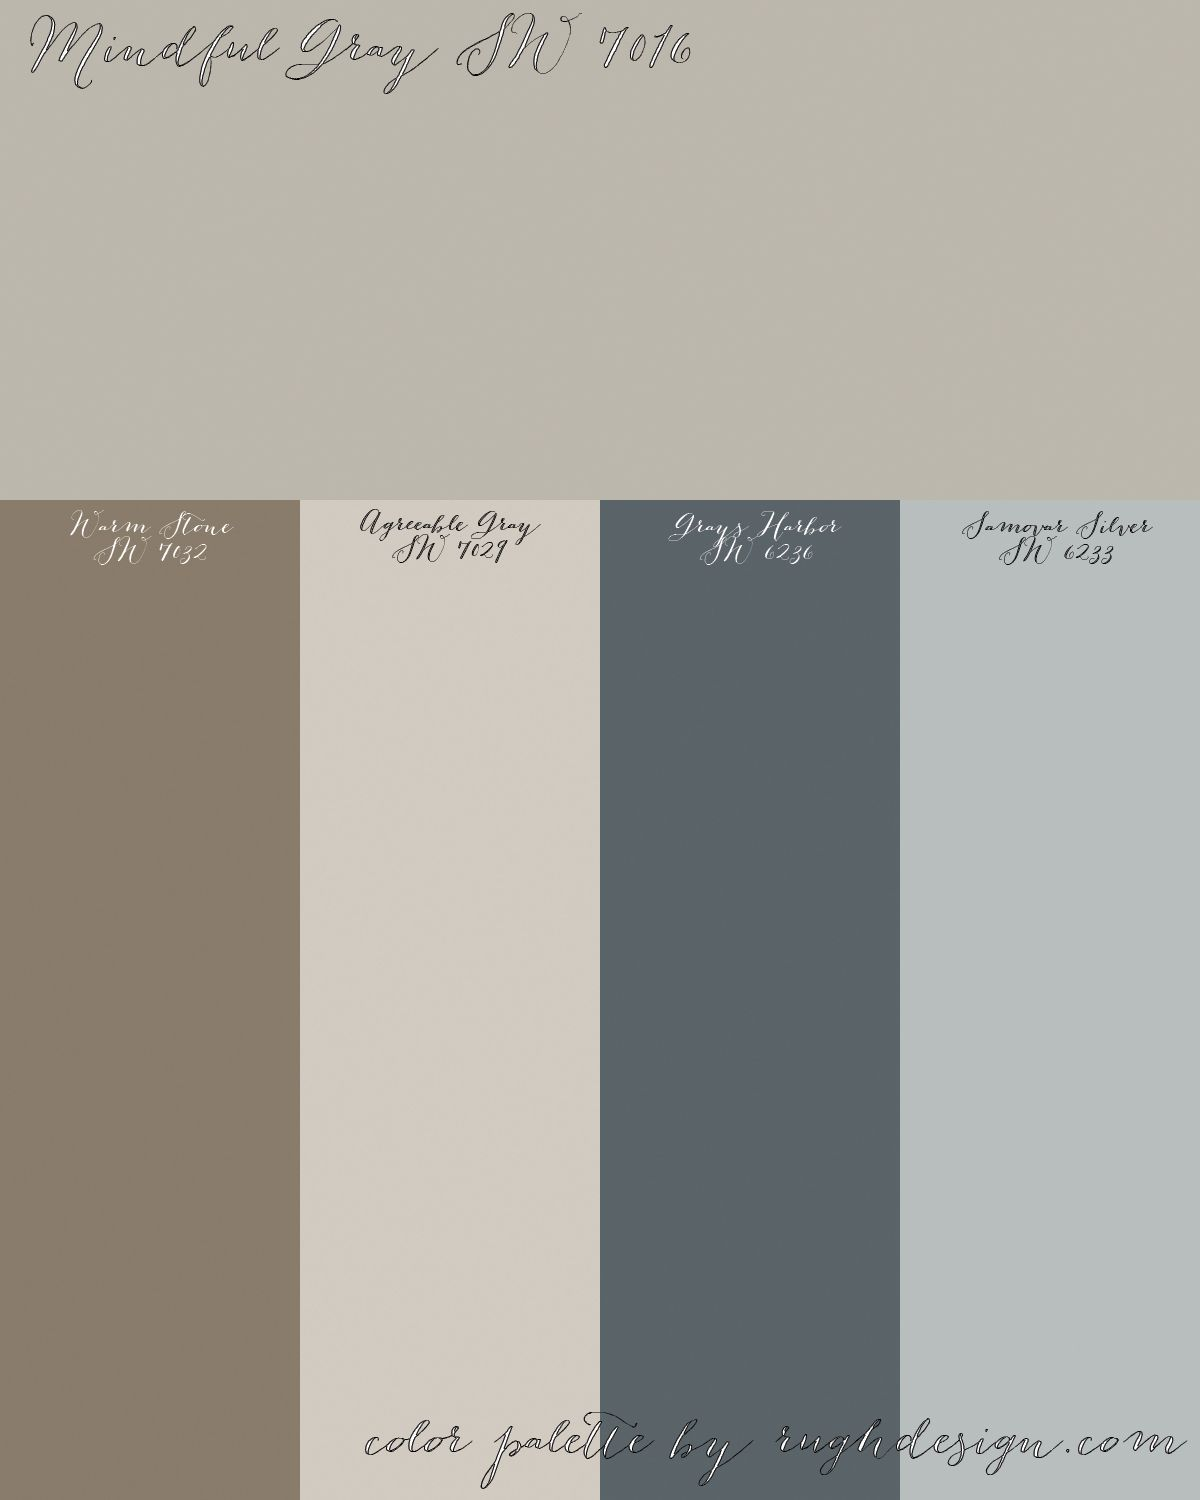 Mindful Gray Sw 7016 With A Complementary Color Scheme